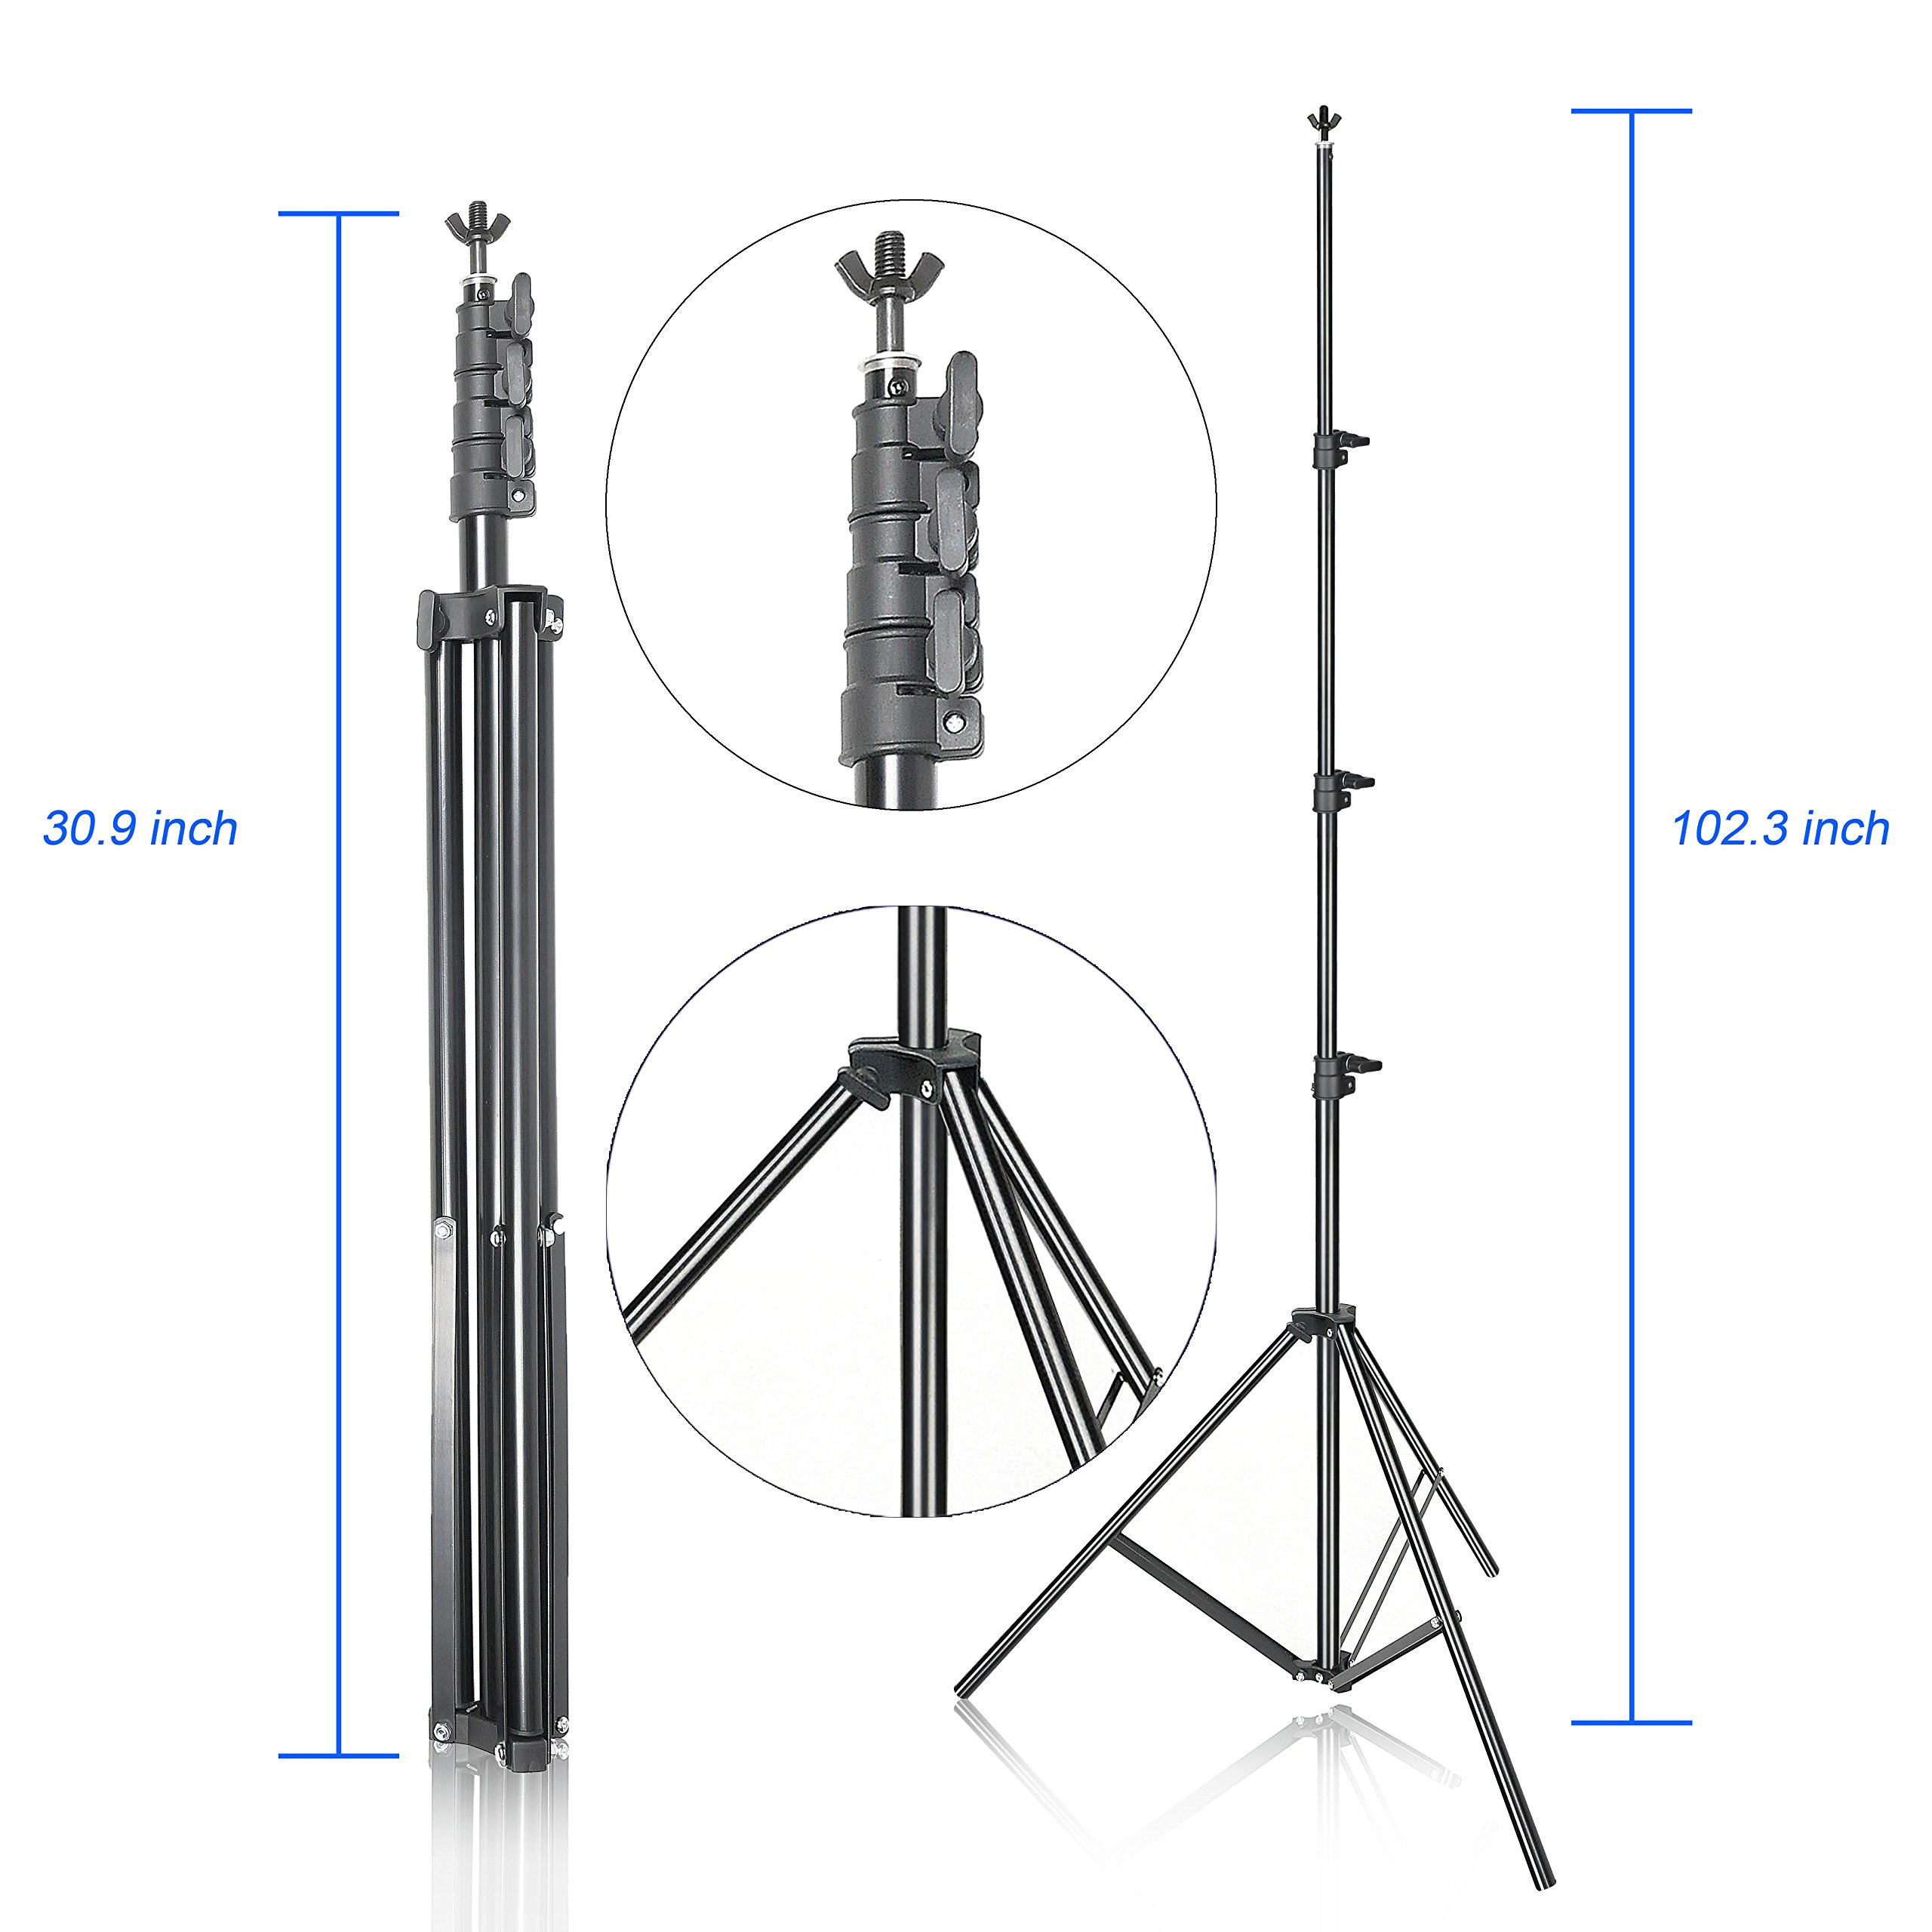 Emart Photo Backdrop Stand, 8.5 x 10Ft Photography Background Stand Support System Kit for Video Studio Photo Booth Props Muslin by EMART (Image #2)